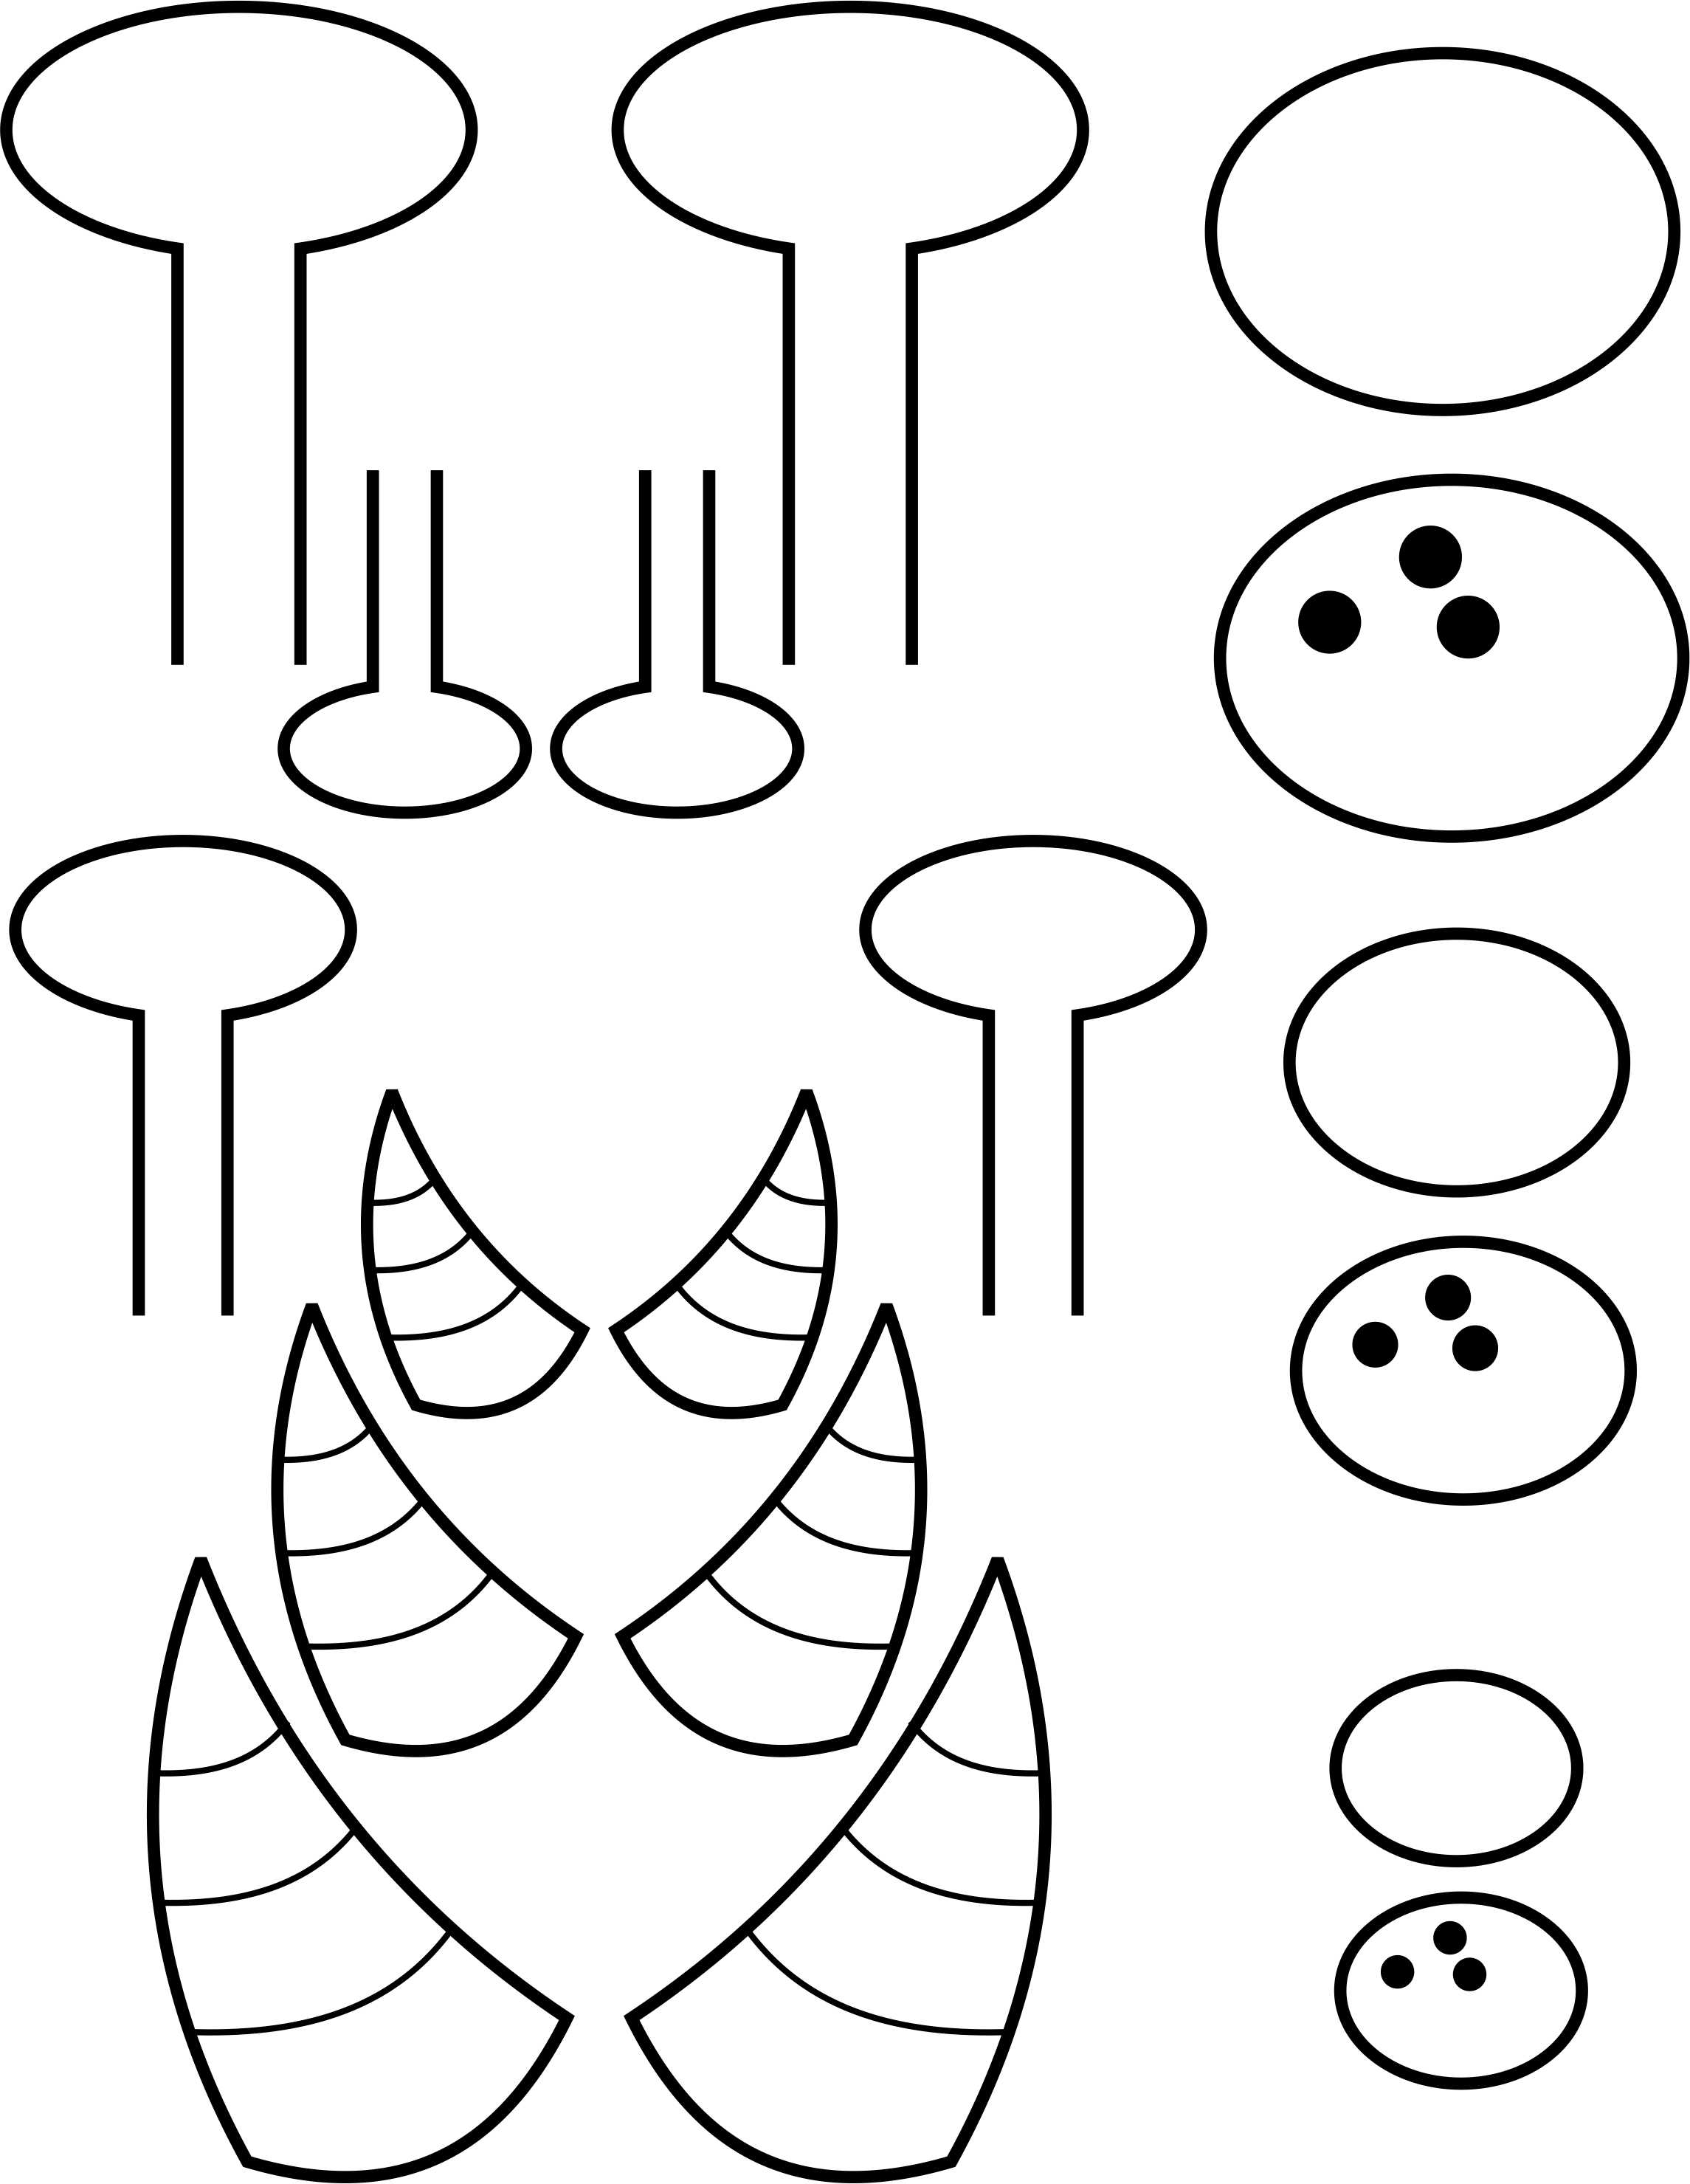 template monste - 8 best images of printable monster eye templates